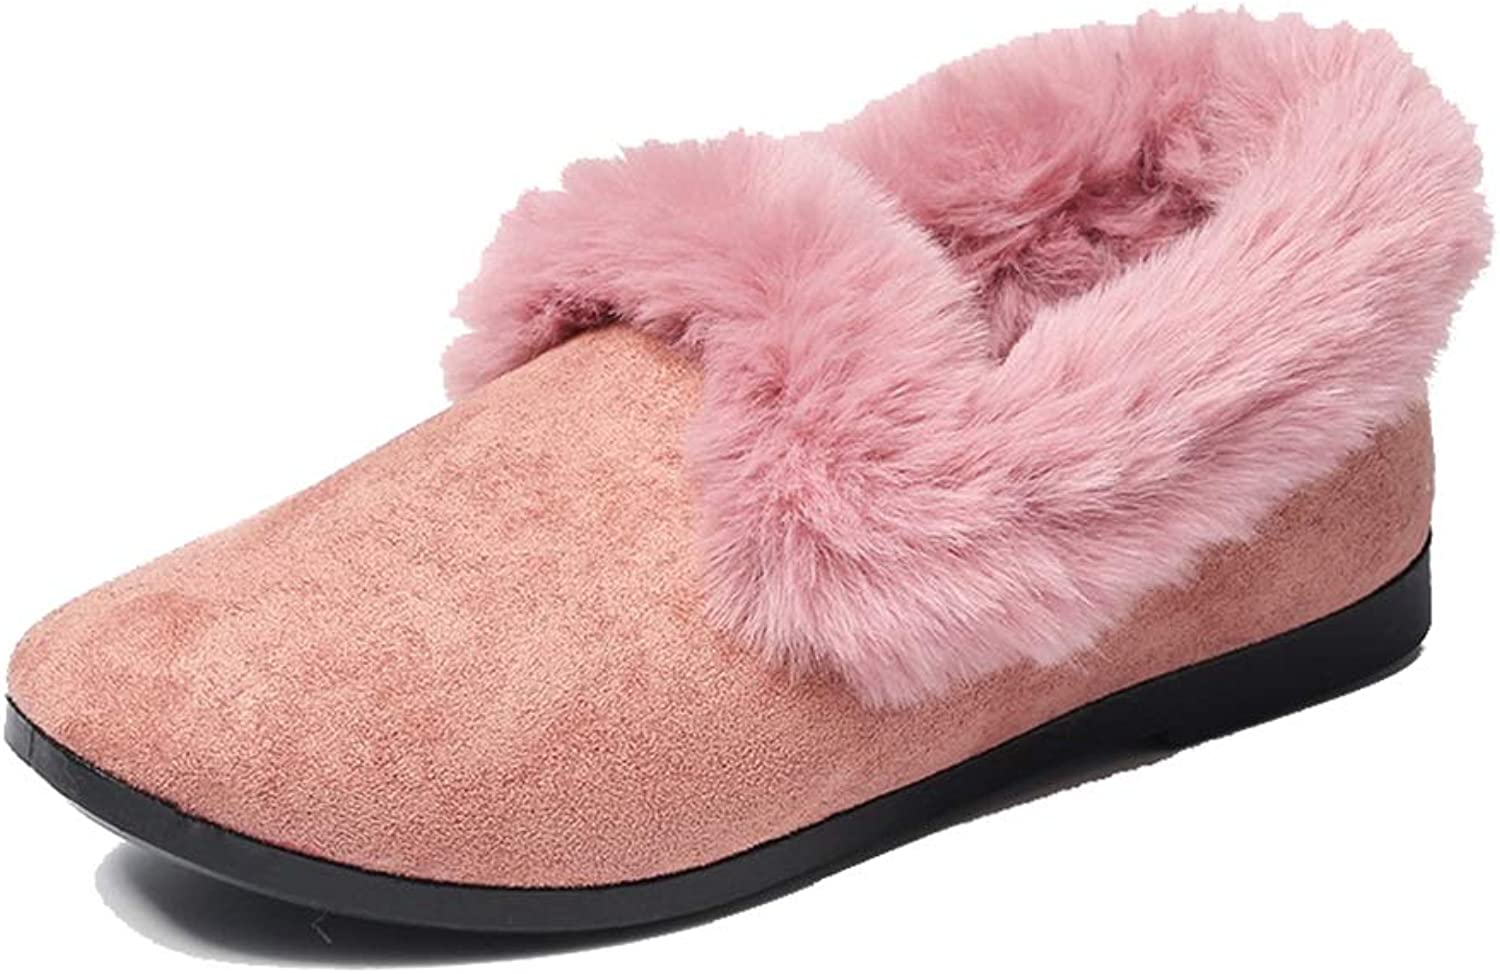 August Jim Women Fluffy Flat shoes,Round Toe Cotton Casual Loafers Mom